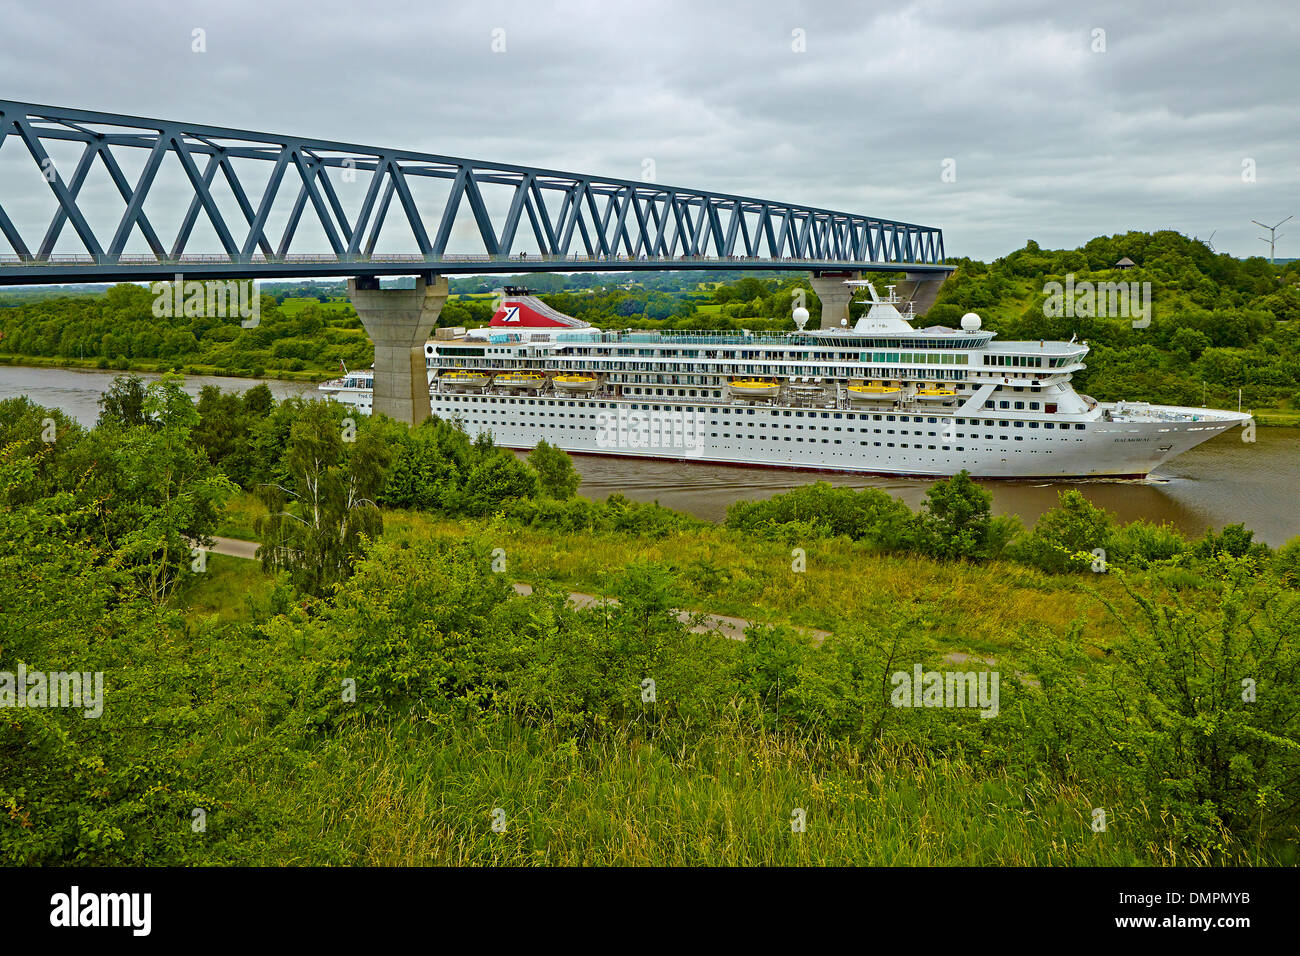 Balmoral cruise ship in the Kiel Canal near Albersdorf, district of Dithmarschen, Schleswig-Holstein, Germany - Stock Image